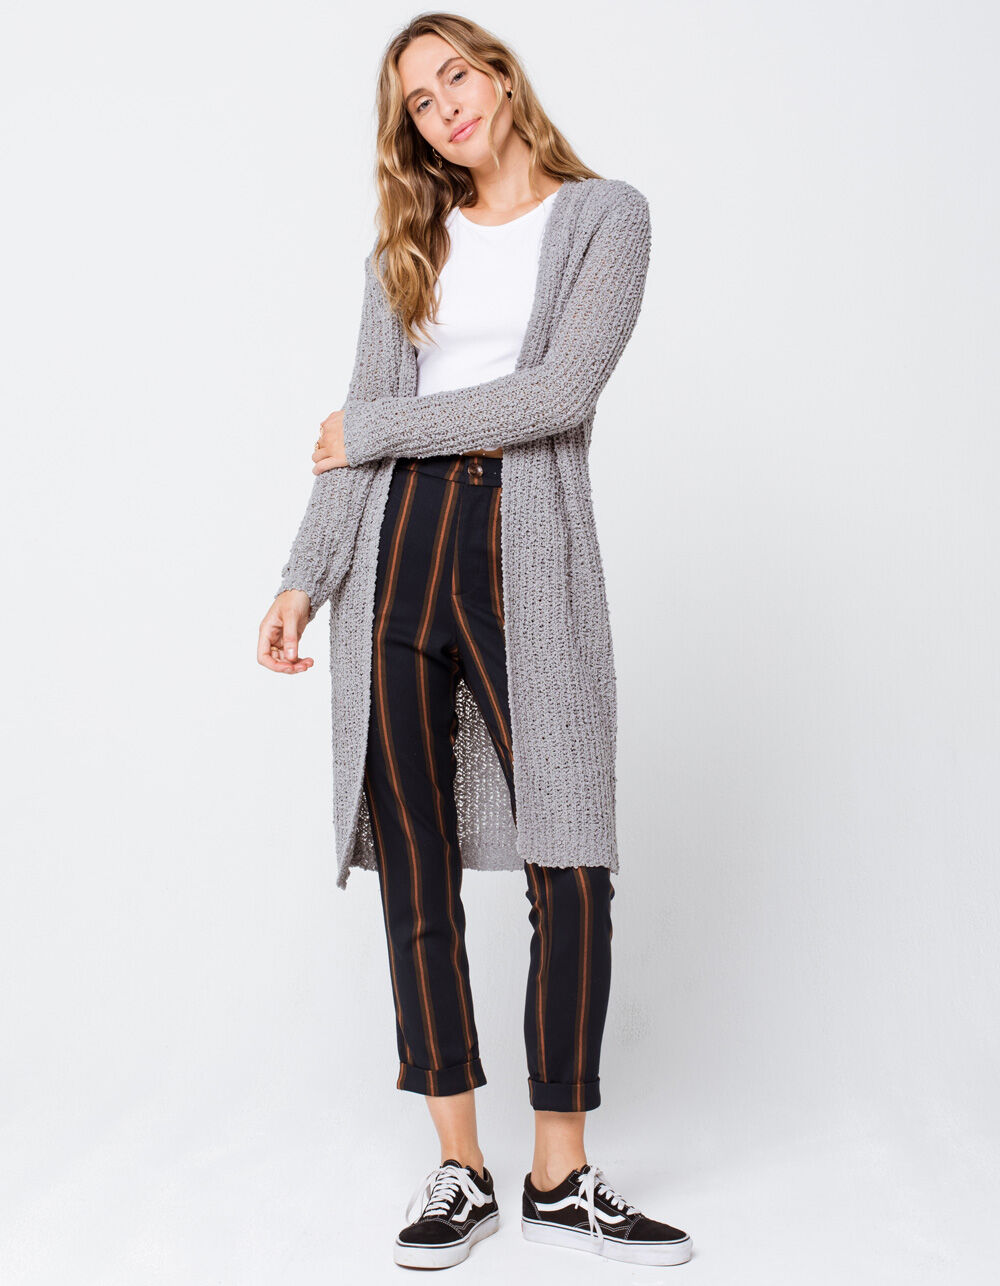 Image of MIMI CHICA Textured Knit Drop Shoulder Gray Cardigan